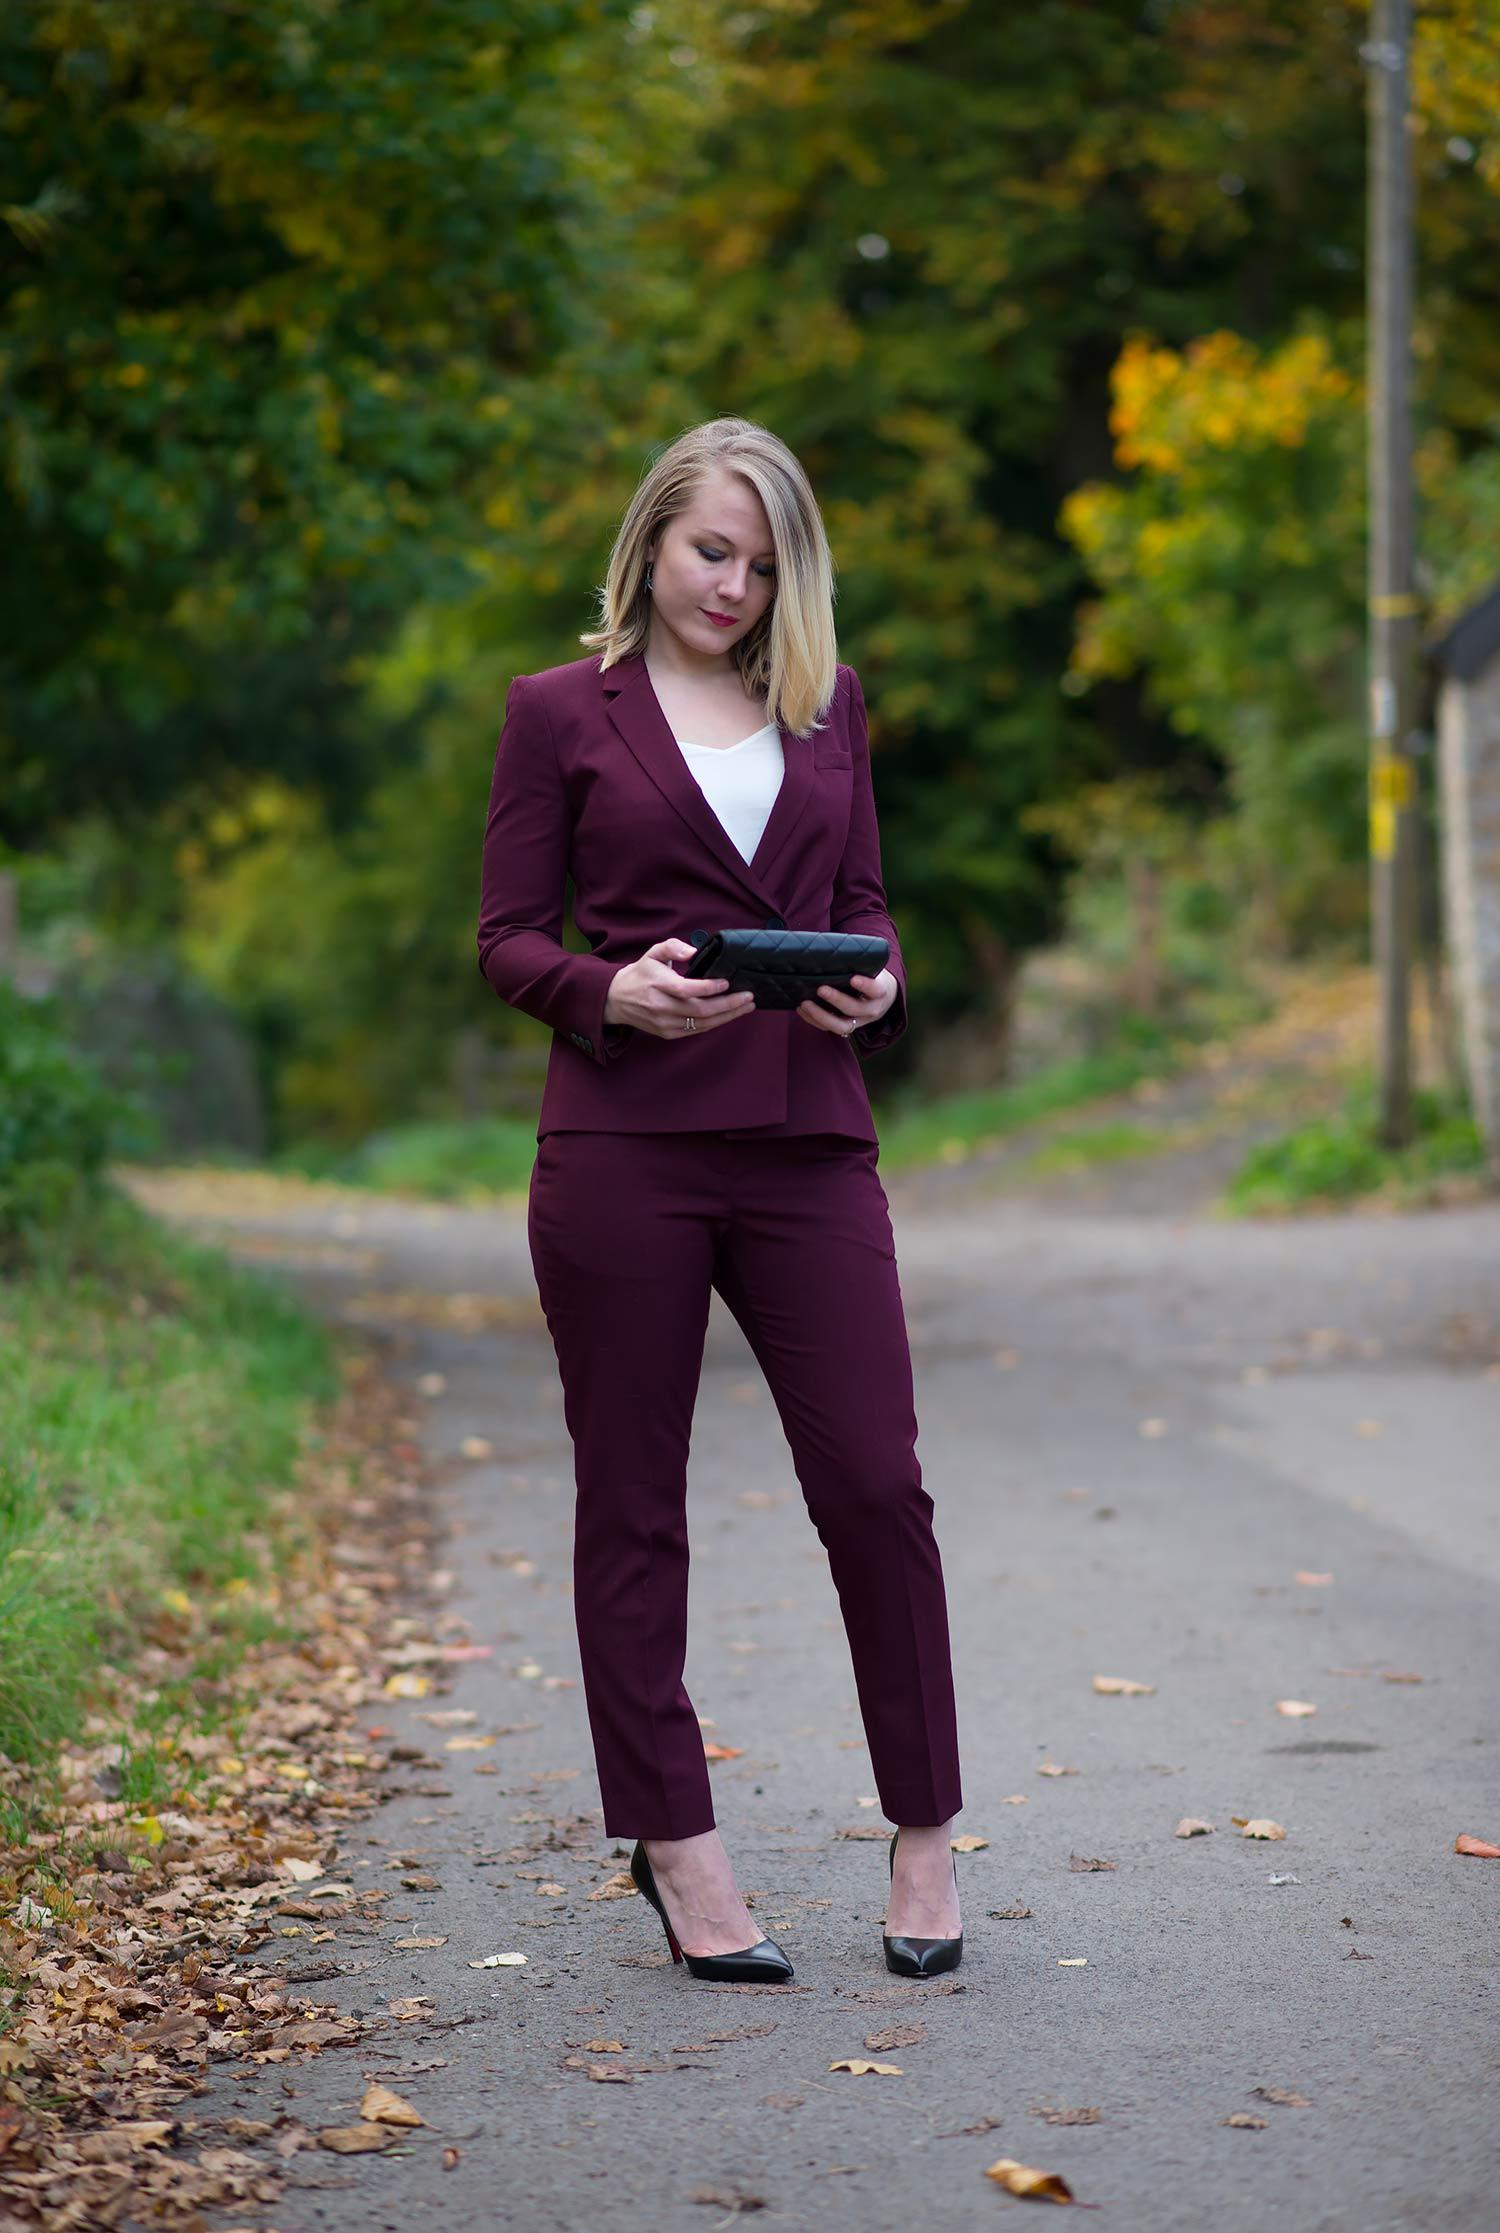 topshop-tailored-burgundy-suit-outfit